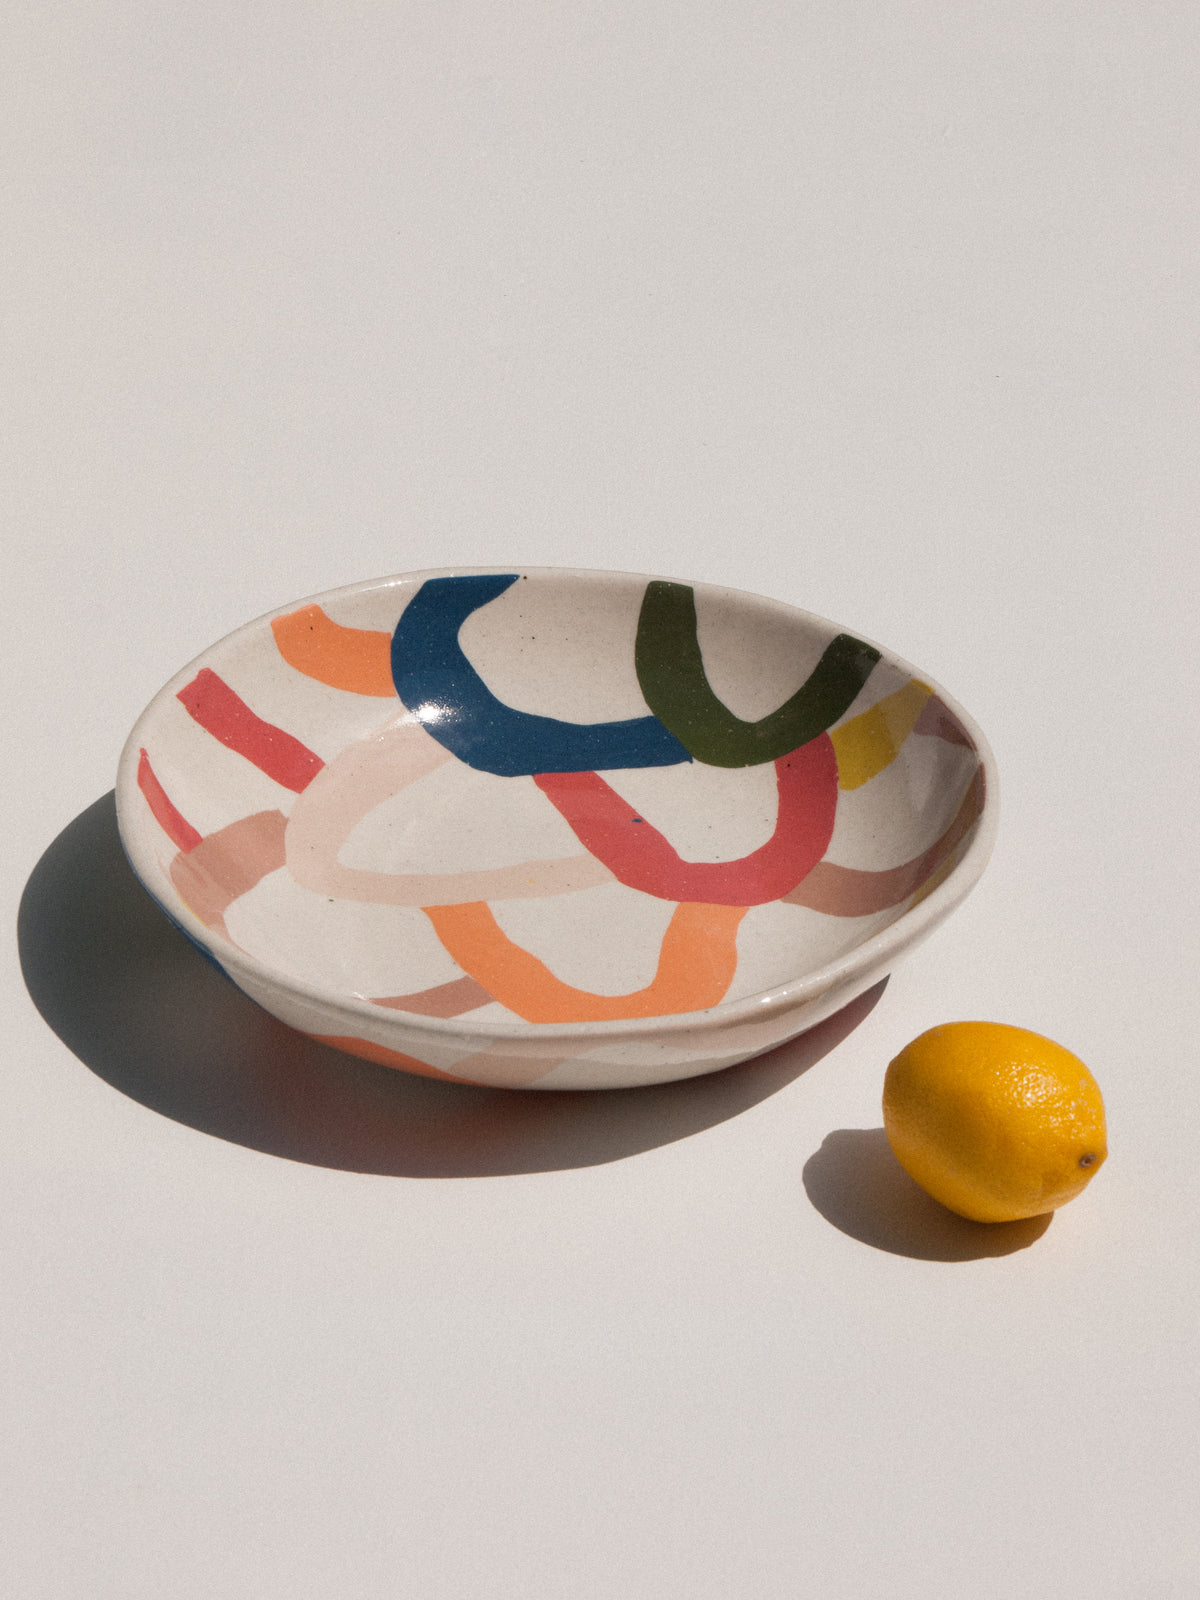 Wundaire stoneware plate in white with colourful irregular patterns. Maker's Mrkt Melbourne makers Market. Beautiful gift idea